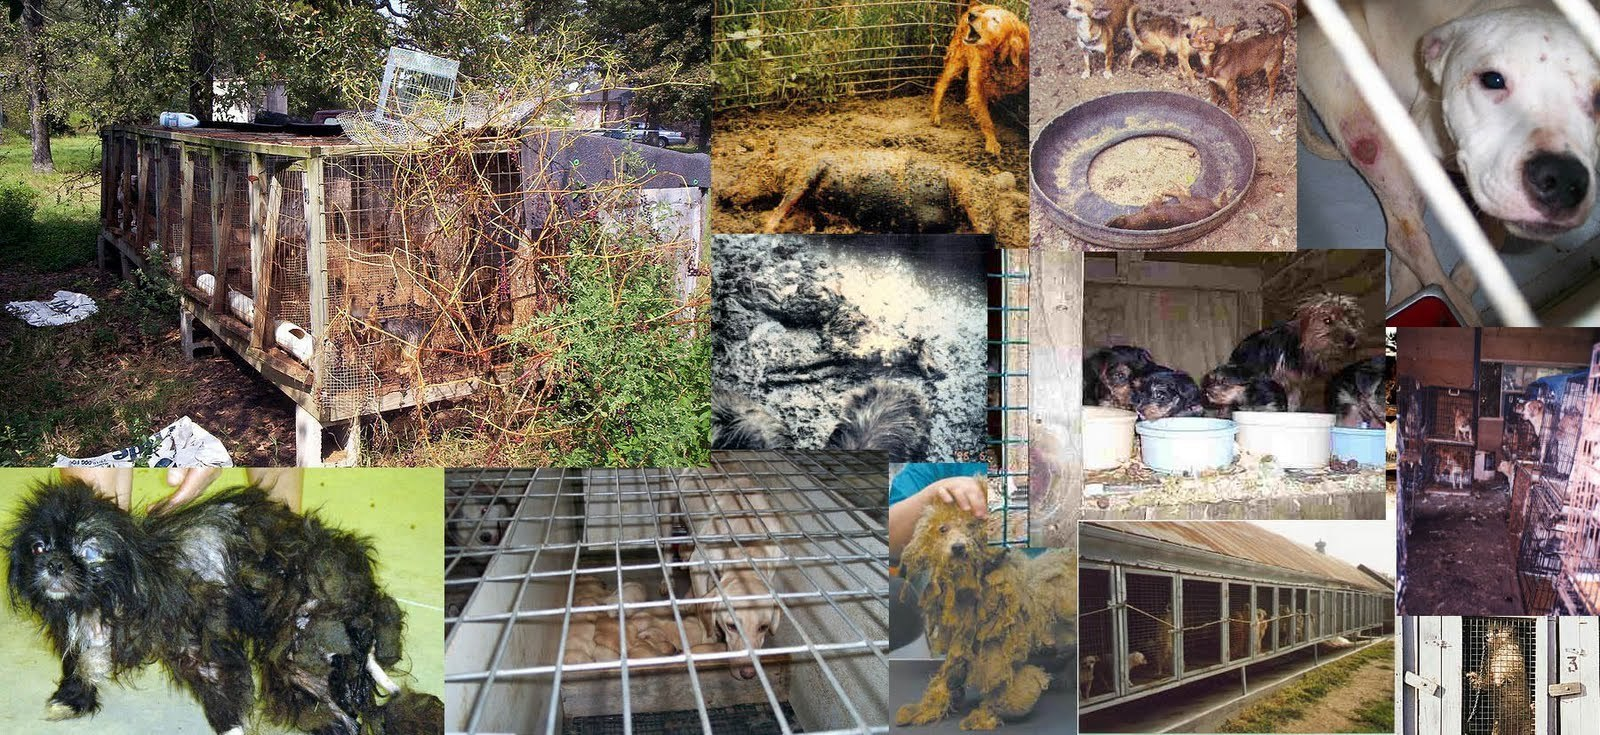 Animal Farm Wallpaper Against Puppy Mills Images Stop Puppy Mills Hd